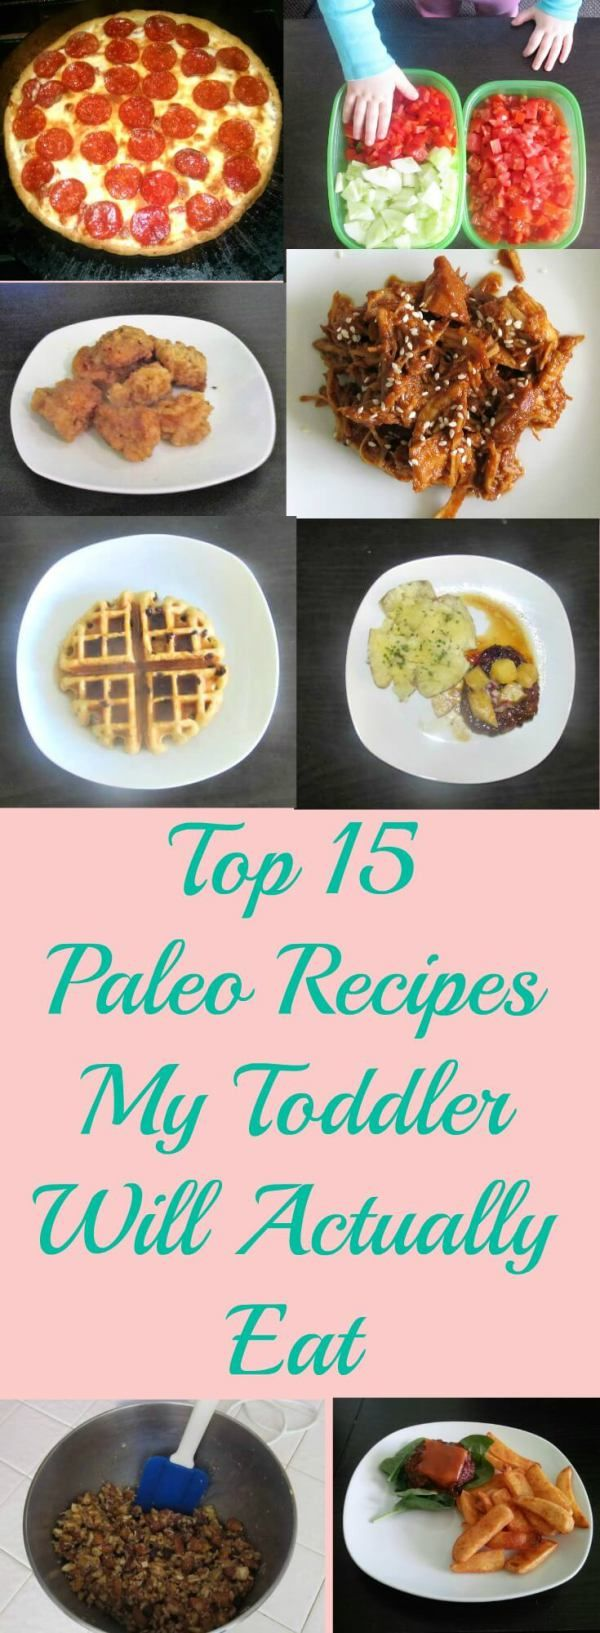 The top paleo recipes that are sure to please even the pickiest of toddlers